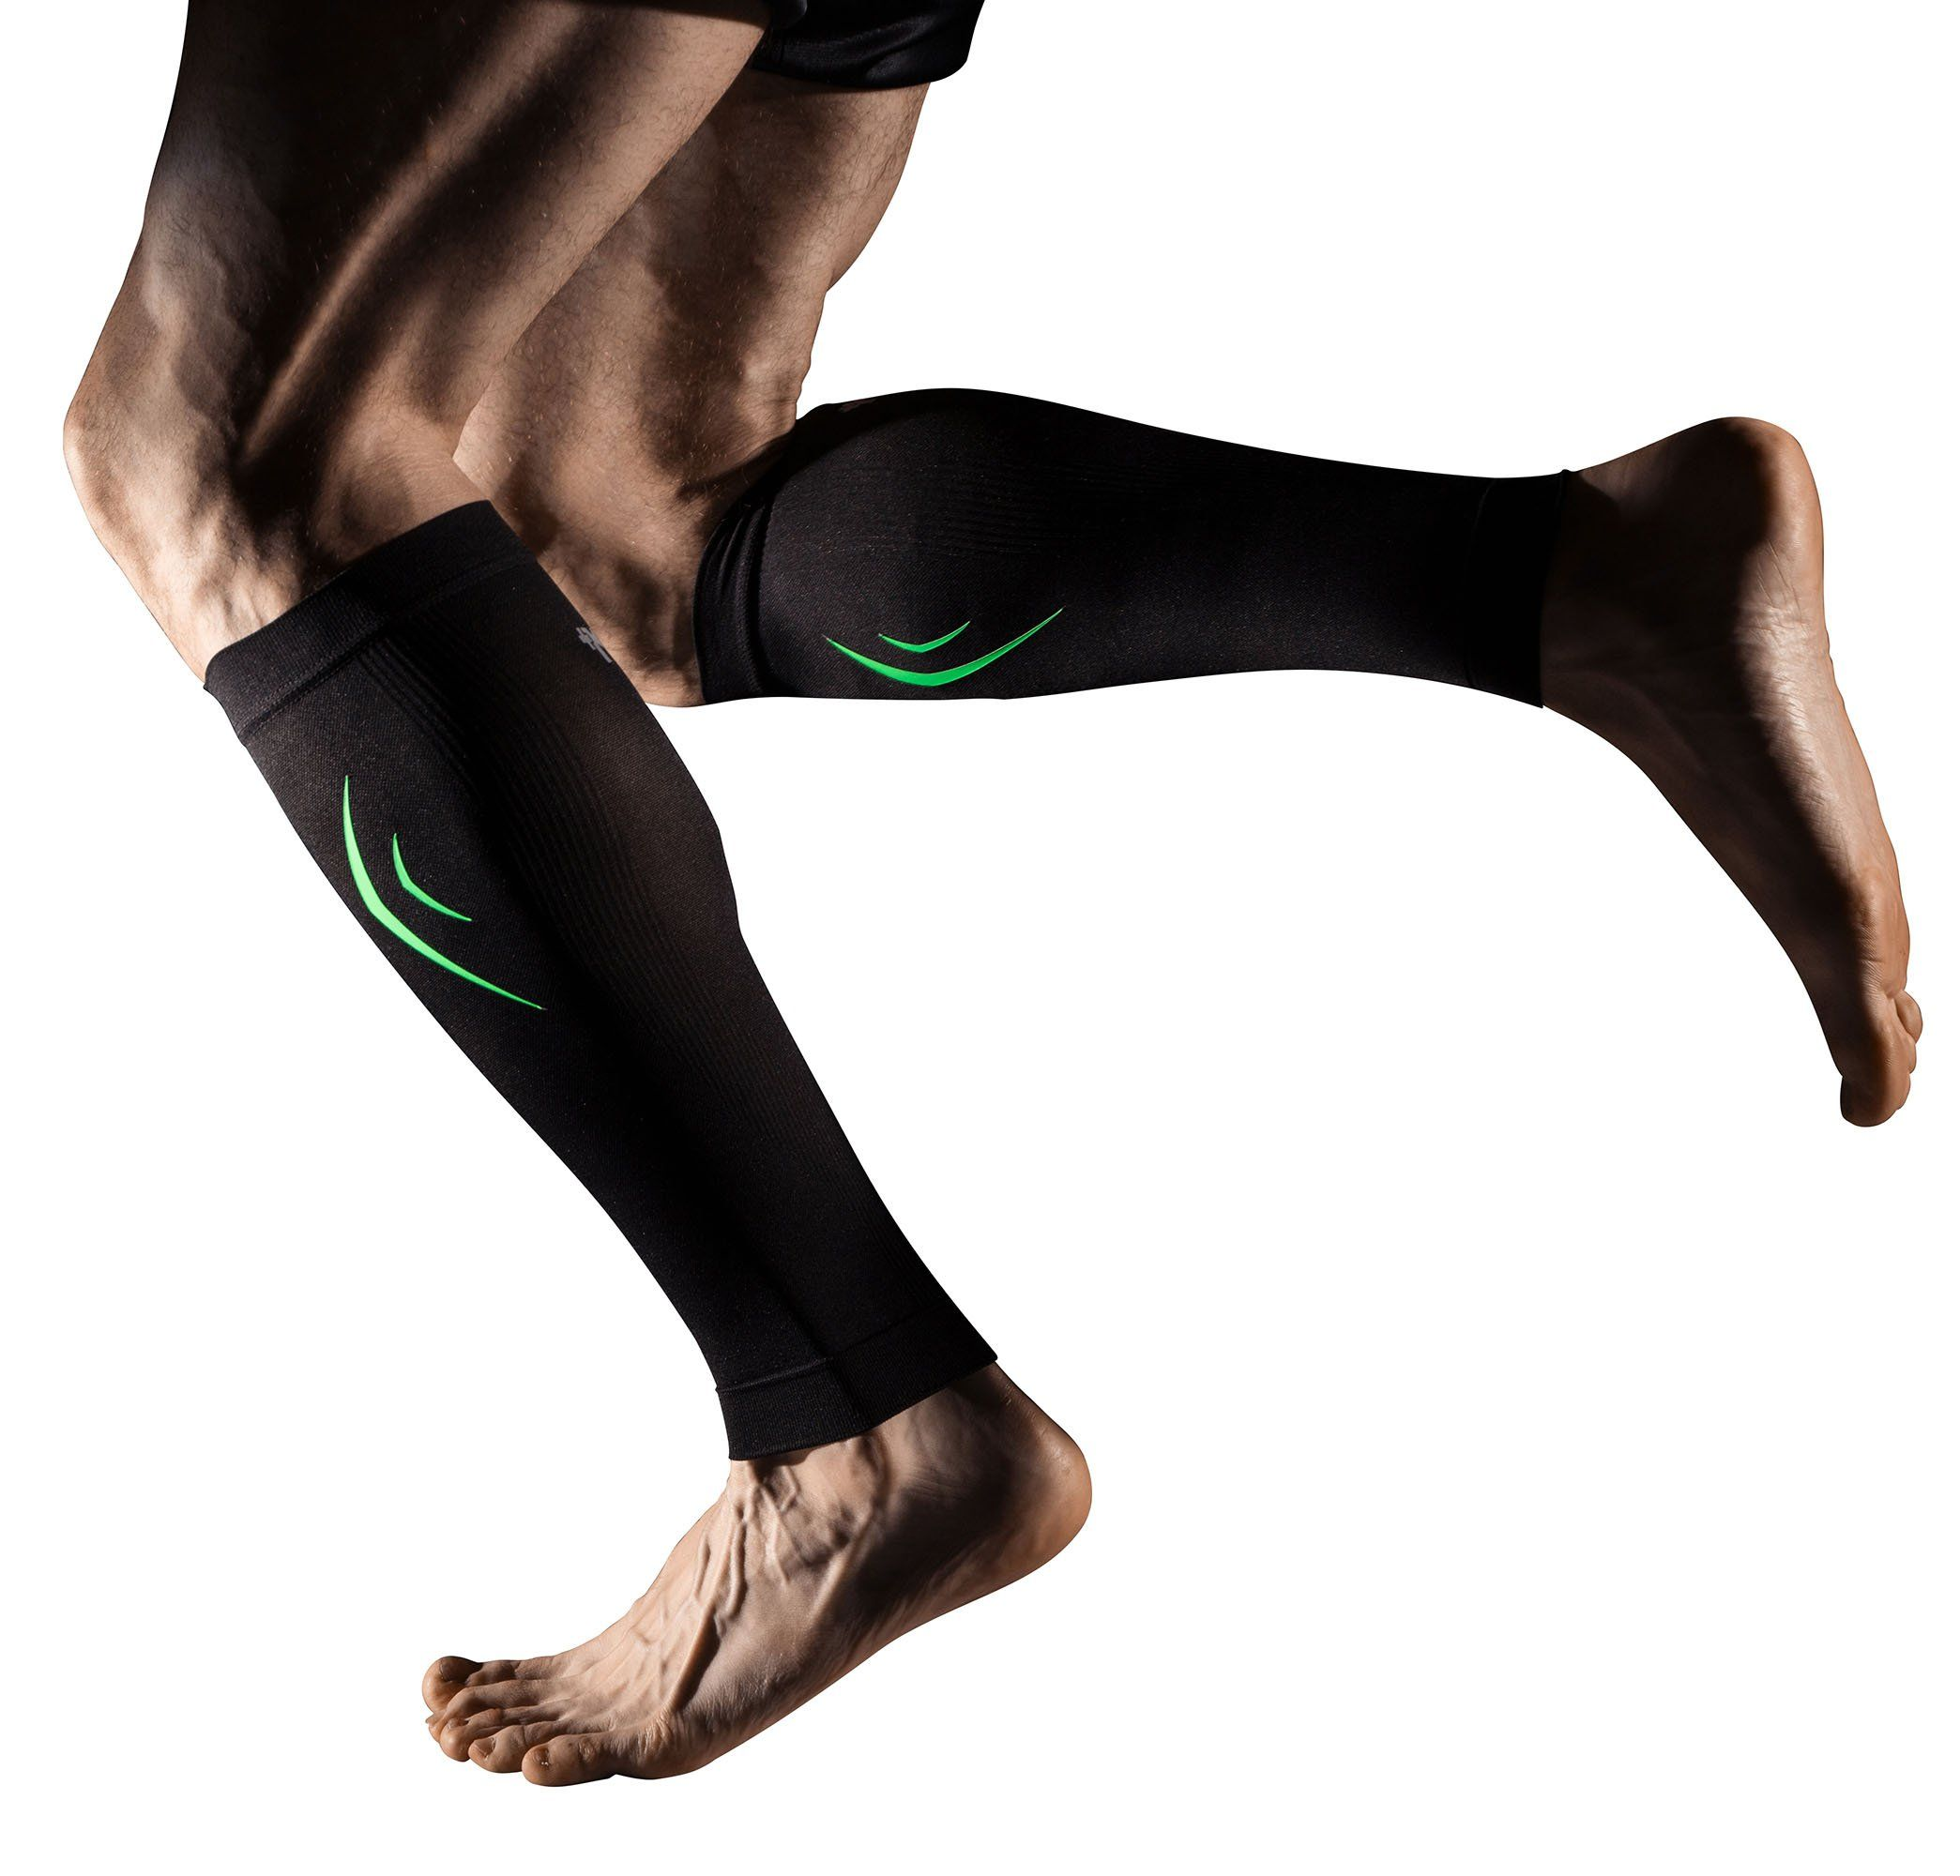 7d85dbfe57 pregnancy workout - MD Compression Calf Sleeve Leg Compression Socks for  Shin Splint and Calf Pain